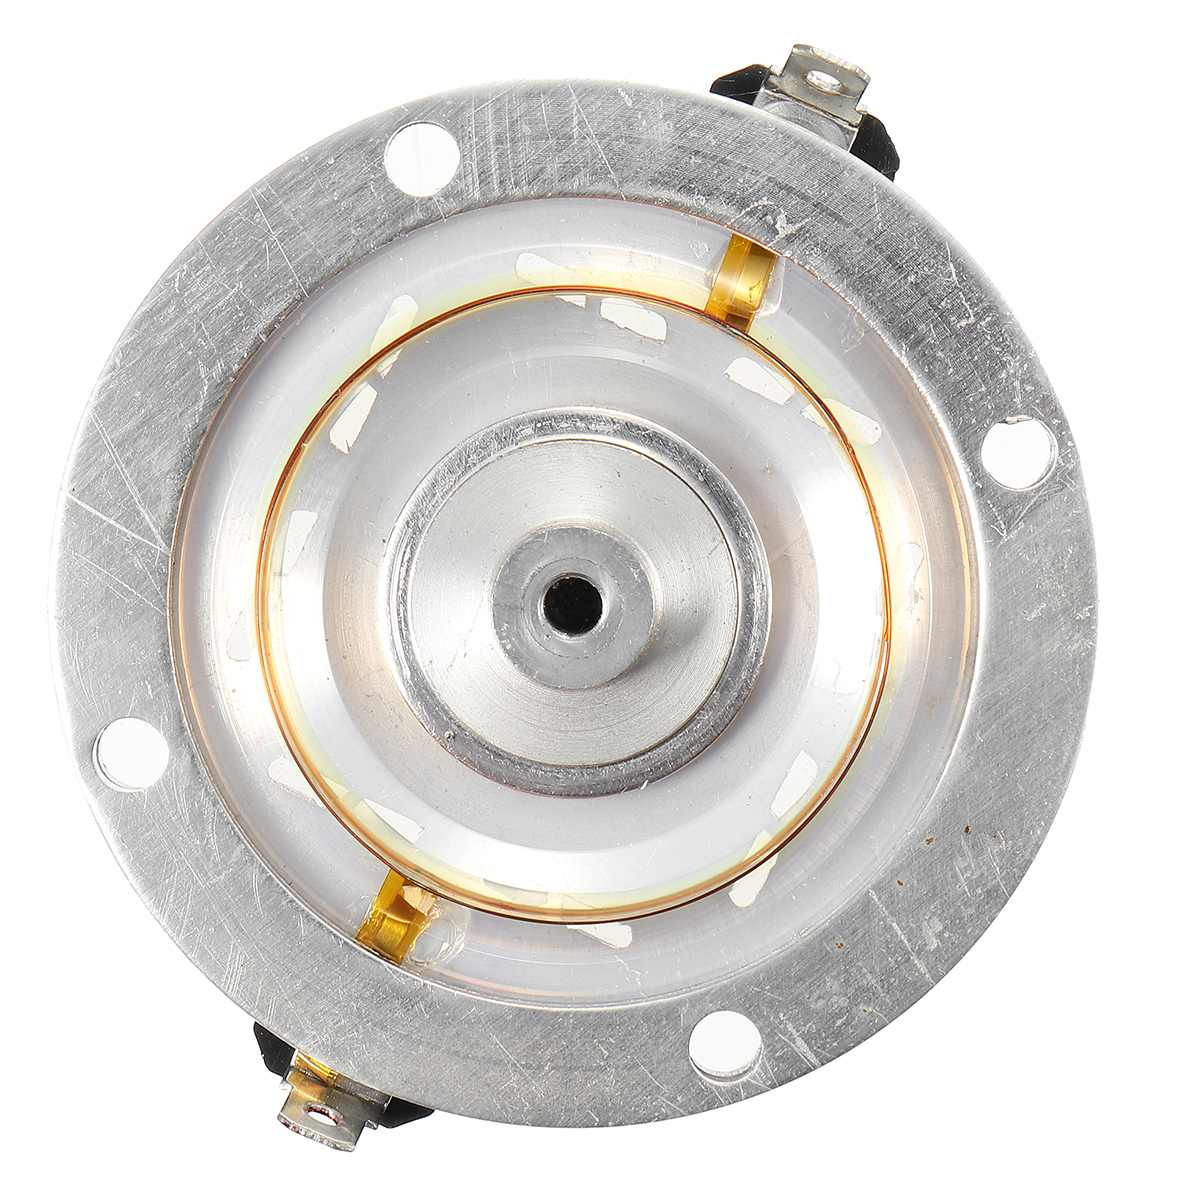 Replacement Diaphragm High Pitched Membrane For JBL 2408H-2 Speaker Horn  Driver PRX725 PRX735 Speaker Accessories Tools